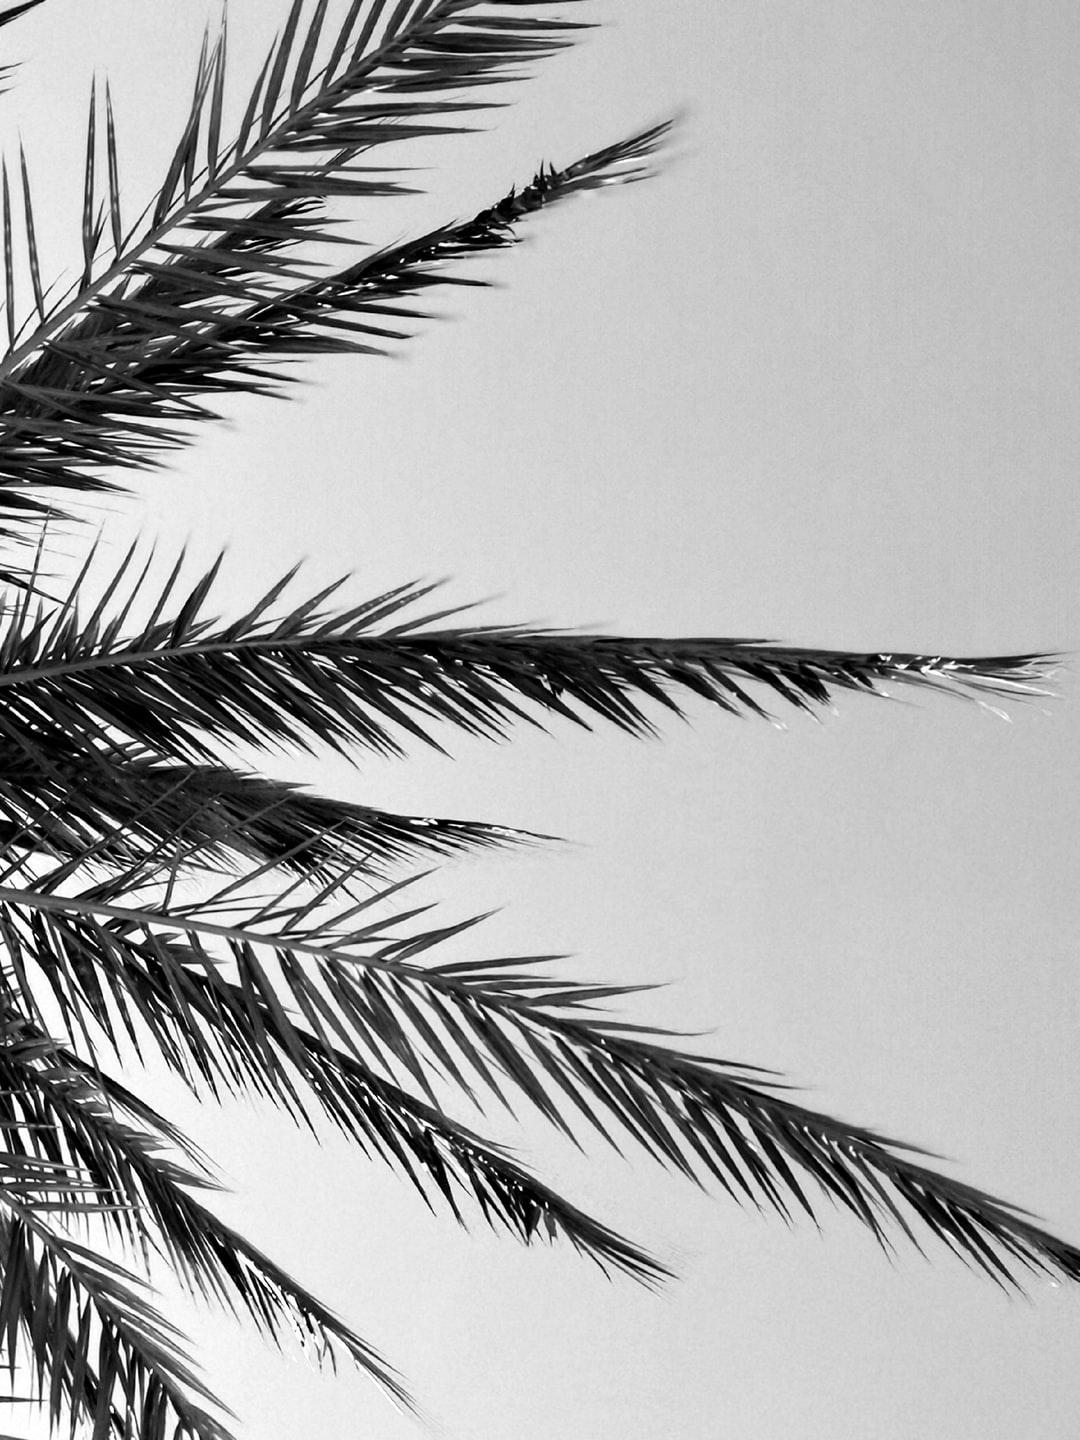 Black And White Wallpapers Free Hd Download 500 Hq Unsplash,Valentines Decoration Ideas